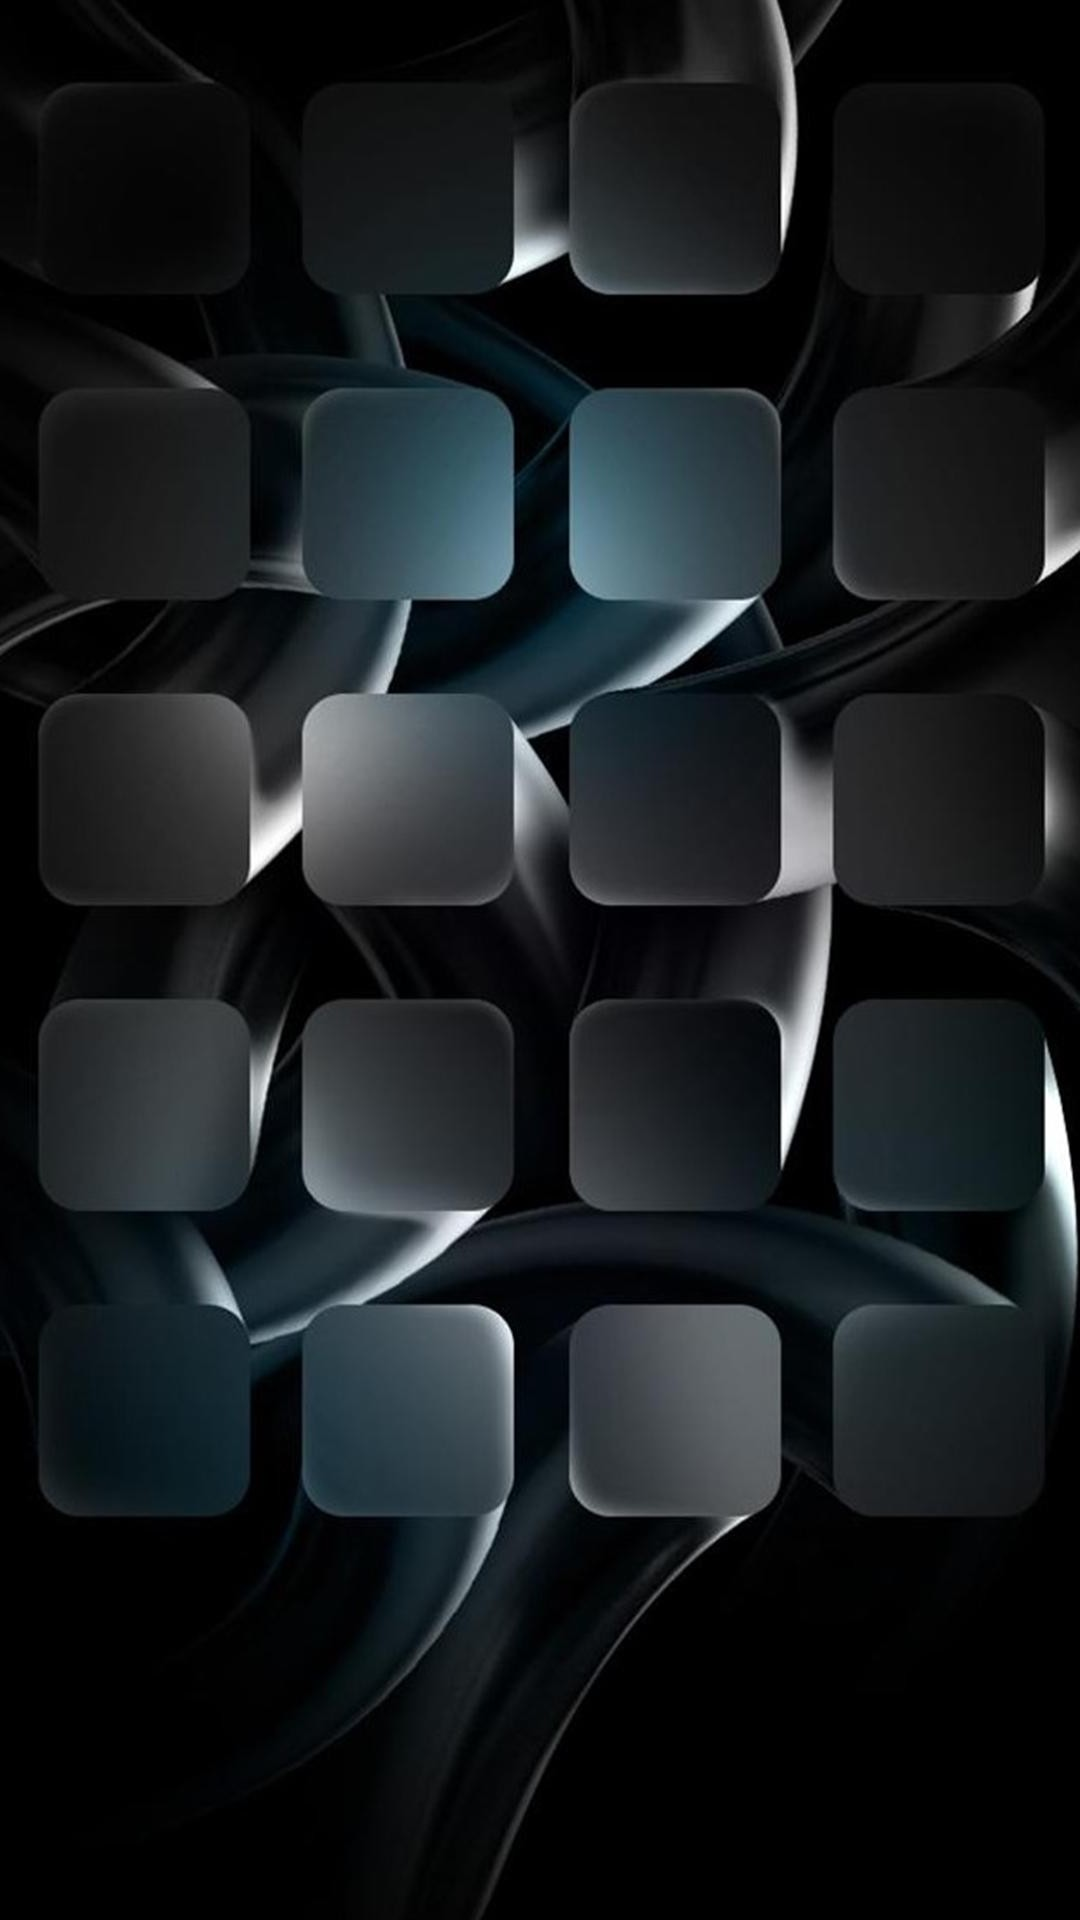 free abstract phone wallpapers download hd